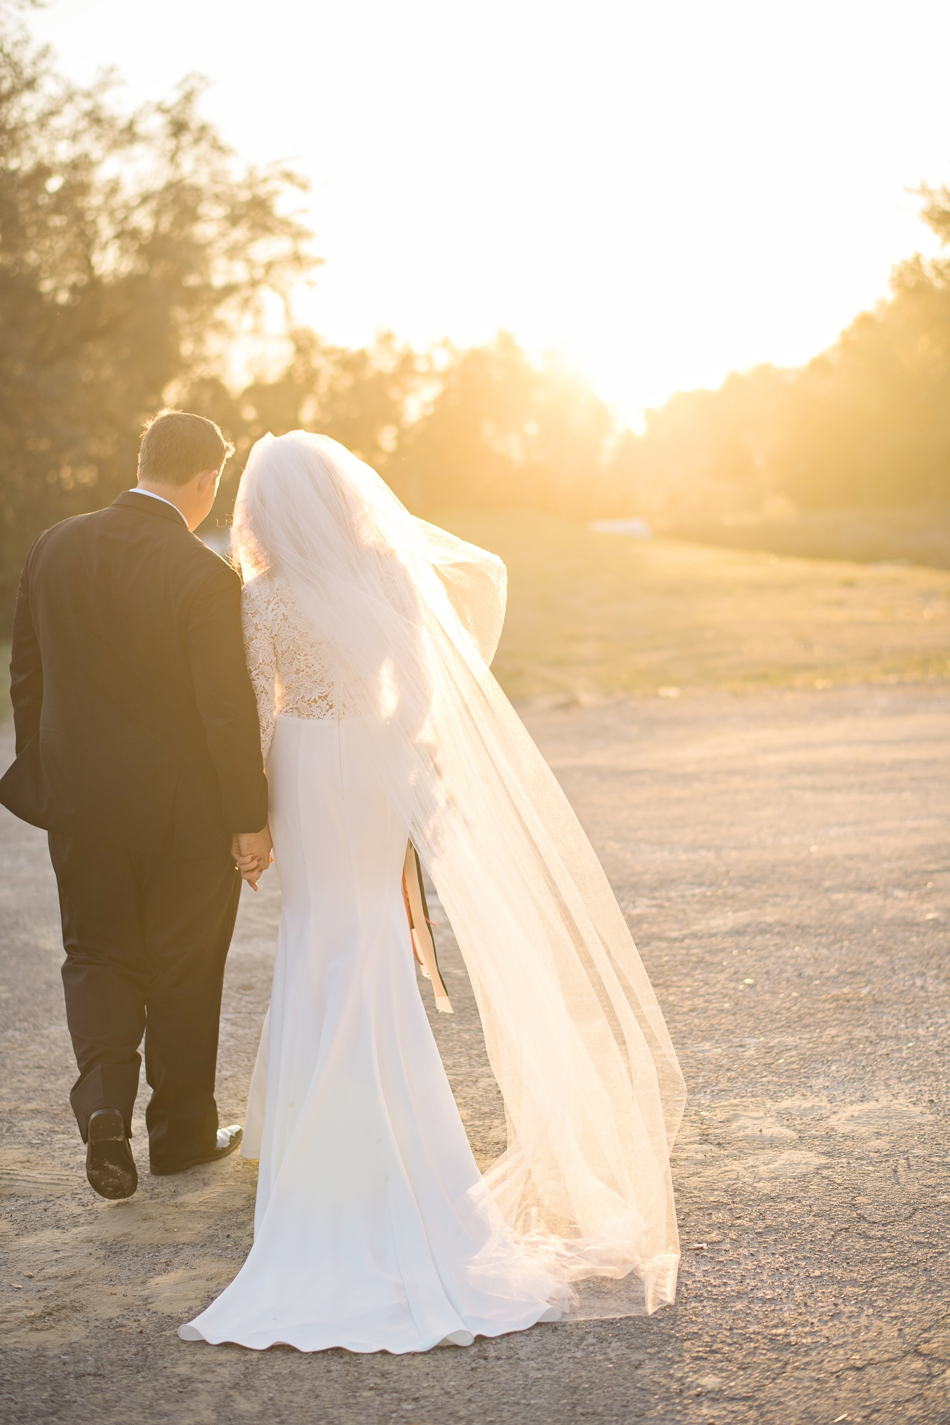 kristen weaver photography - sunset wedding picture